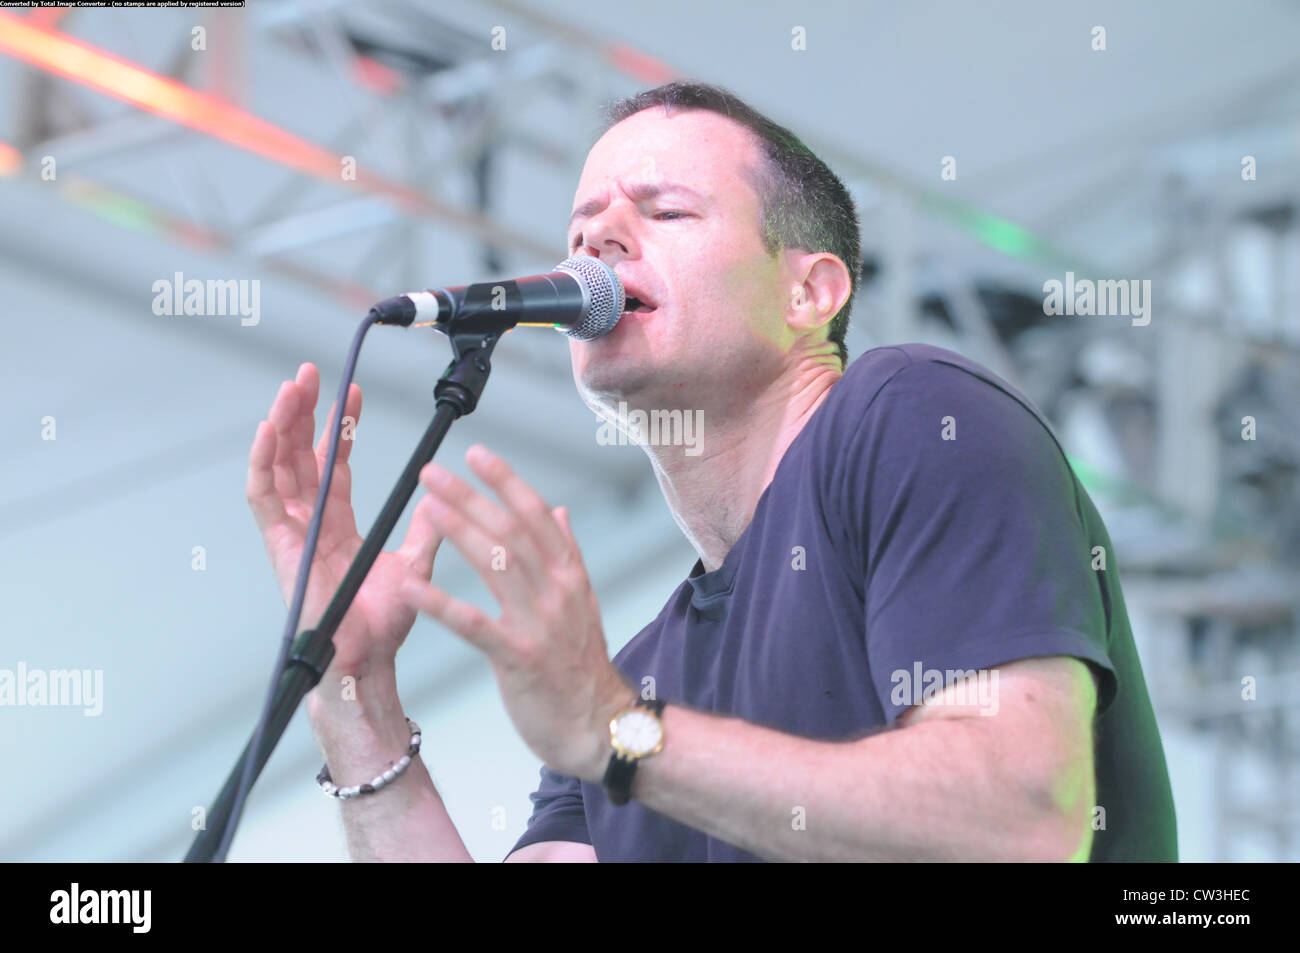 Gregory Grene of Prodigals performs at the Dublin Irish Festival in Dublin Ohio. - Stock Image